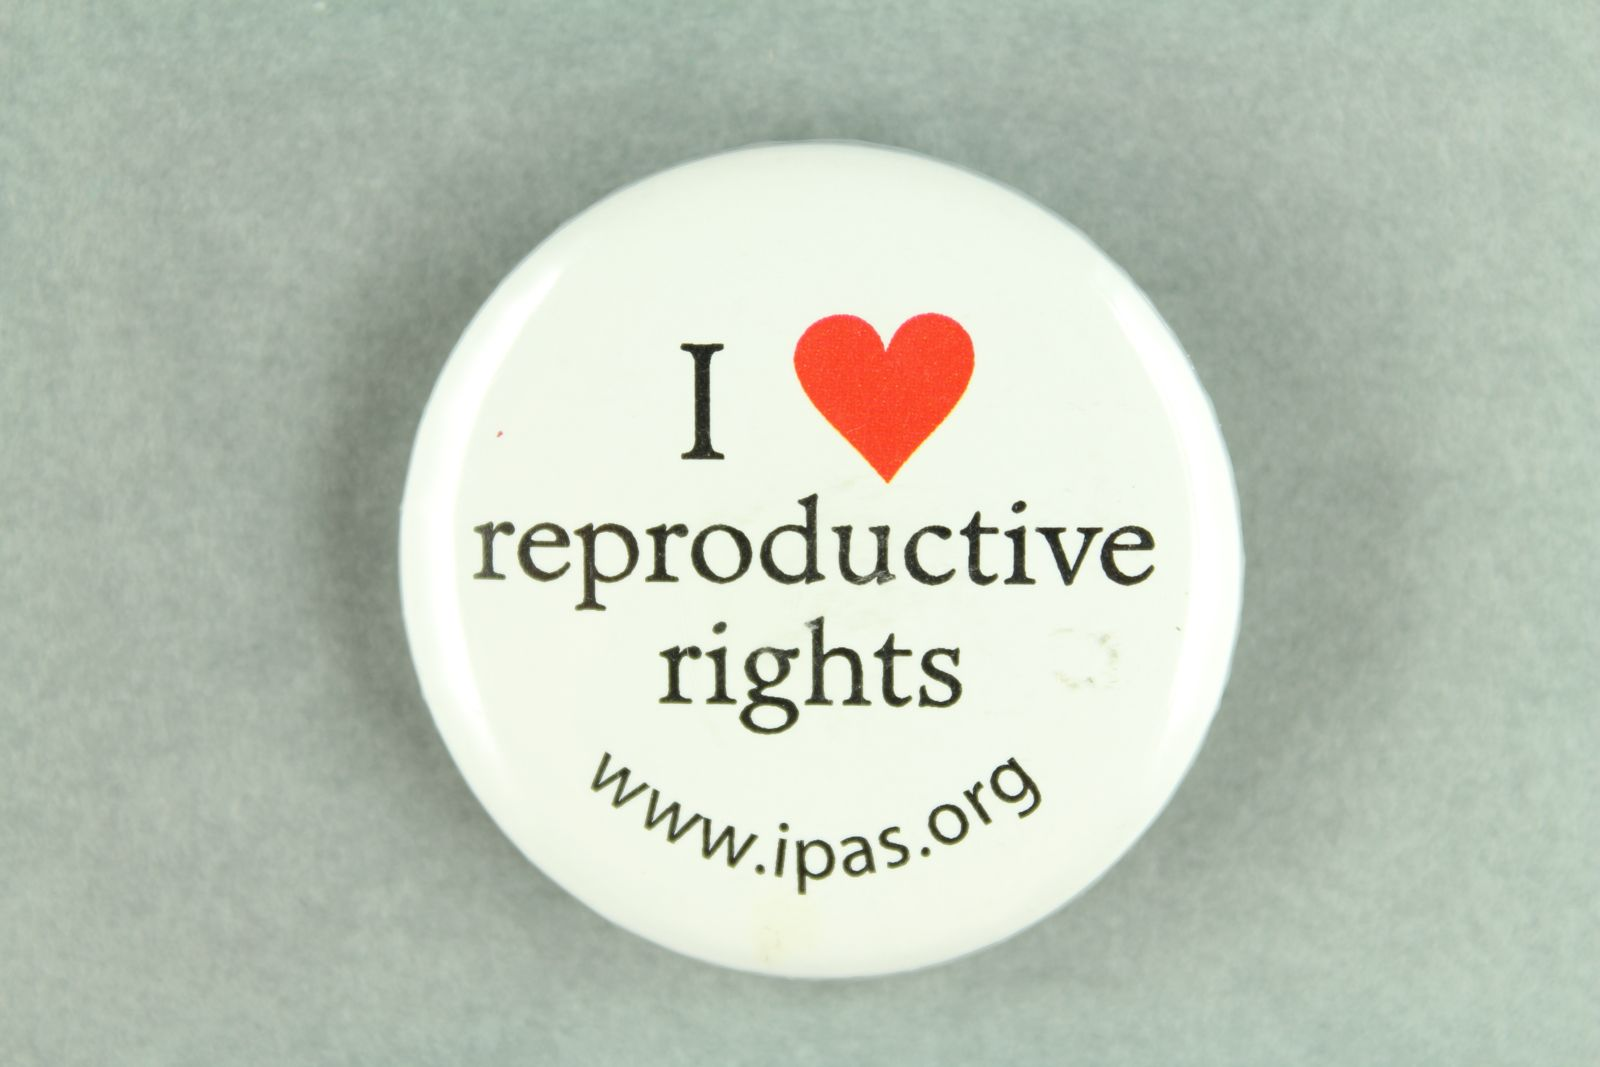 """A white badge with the text, """"I heart reproductive rights, www.ipas.org."""""""